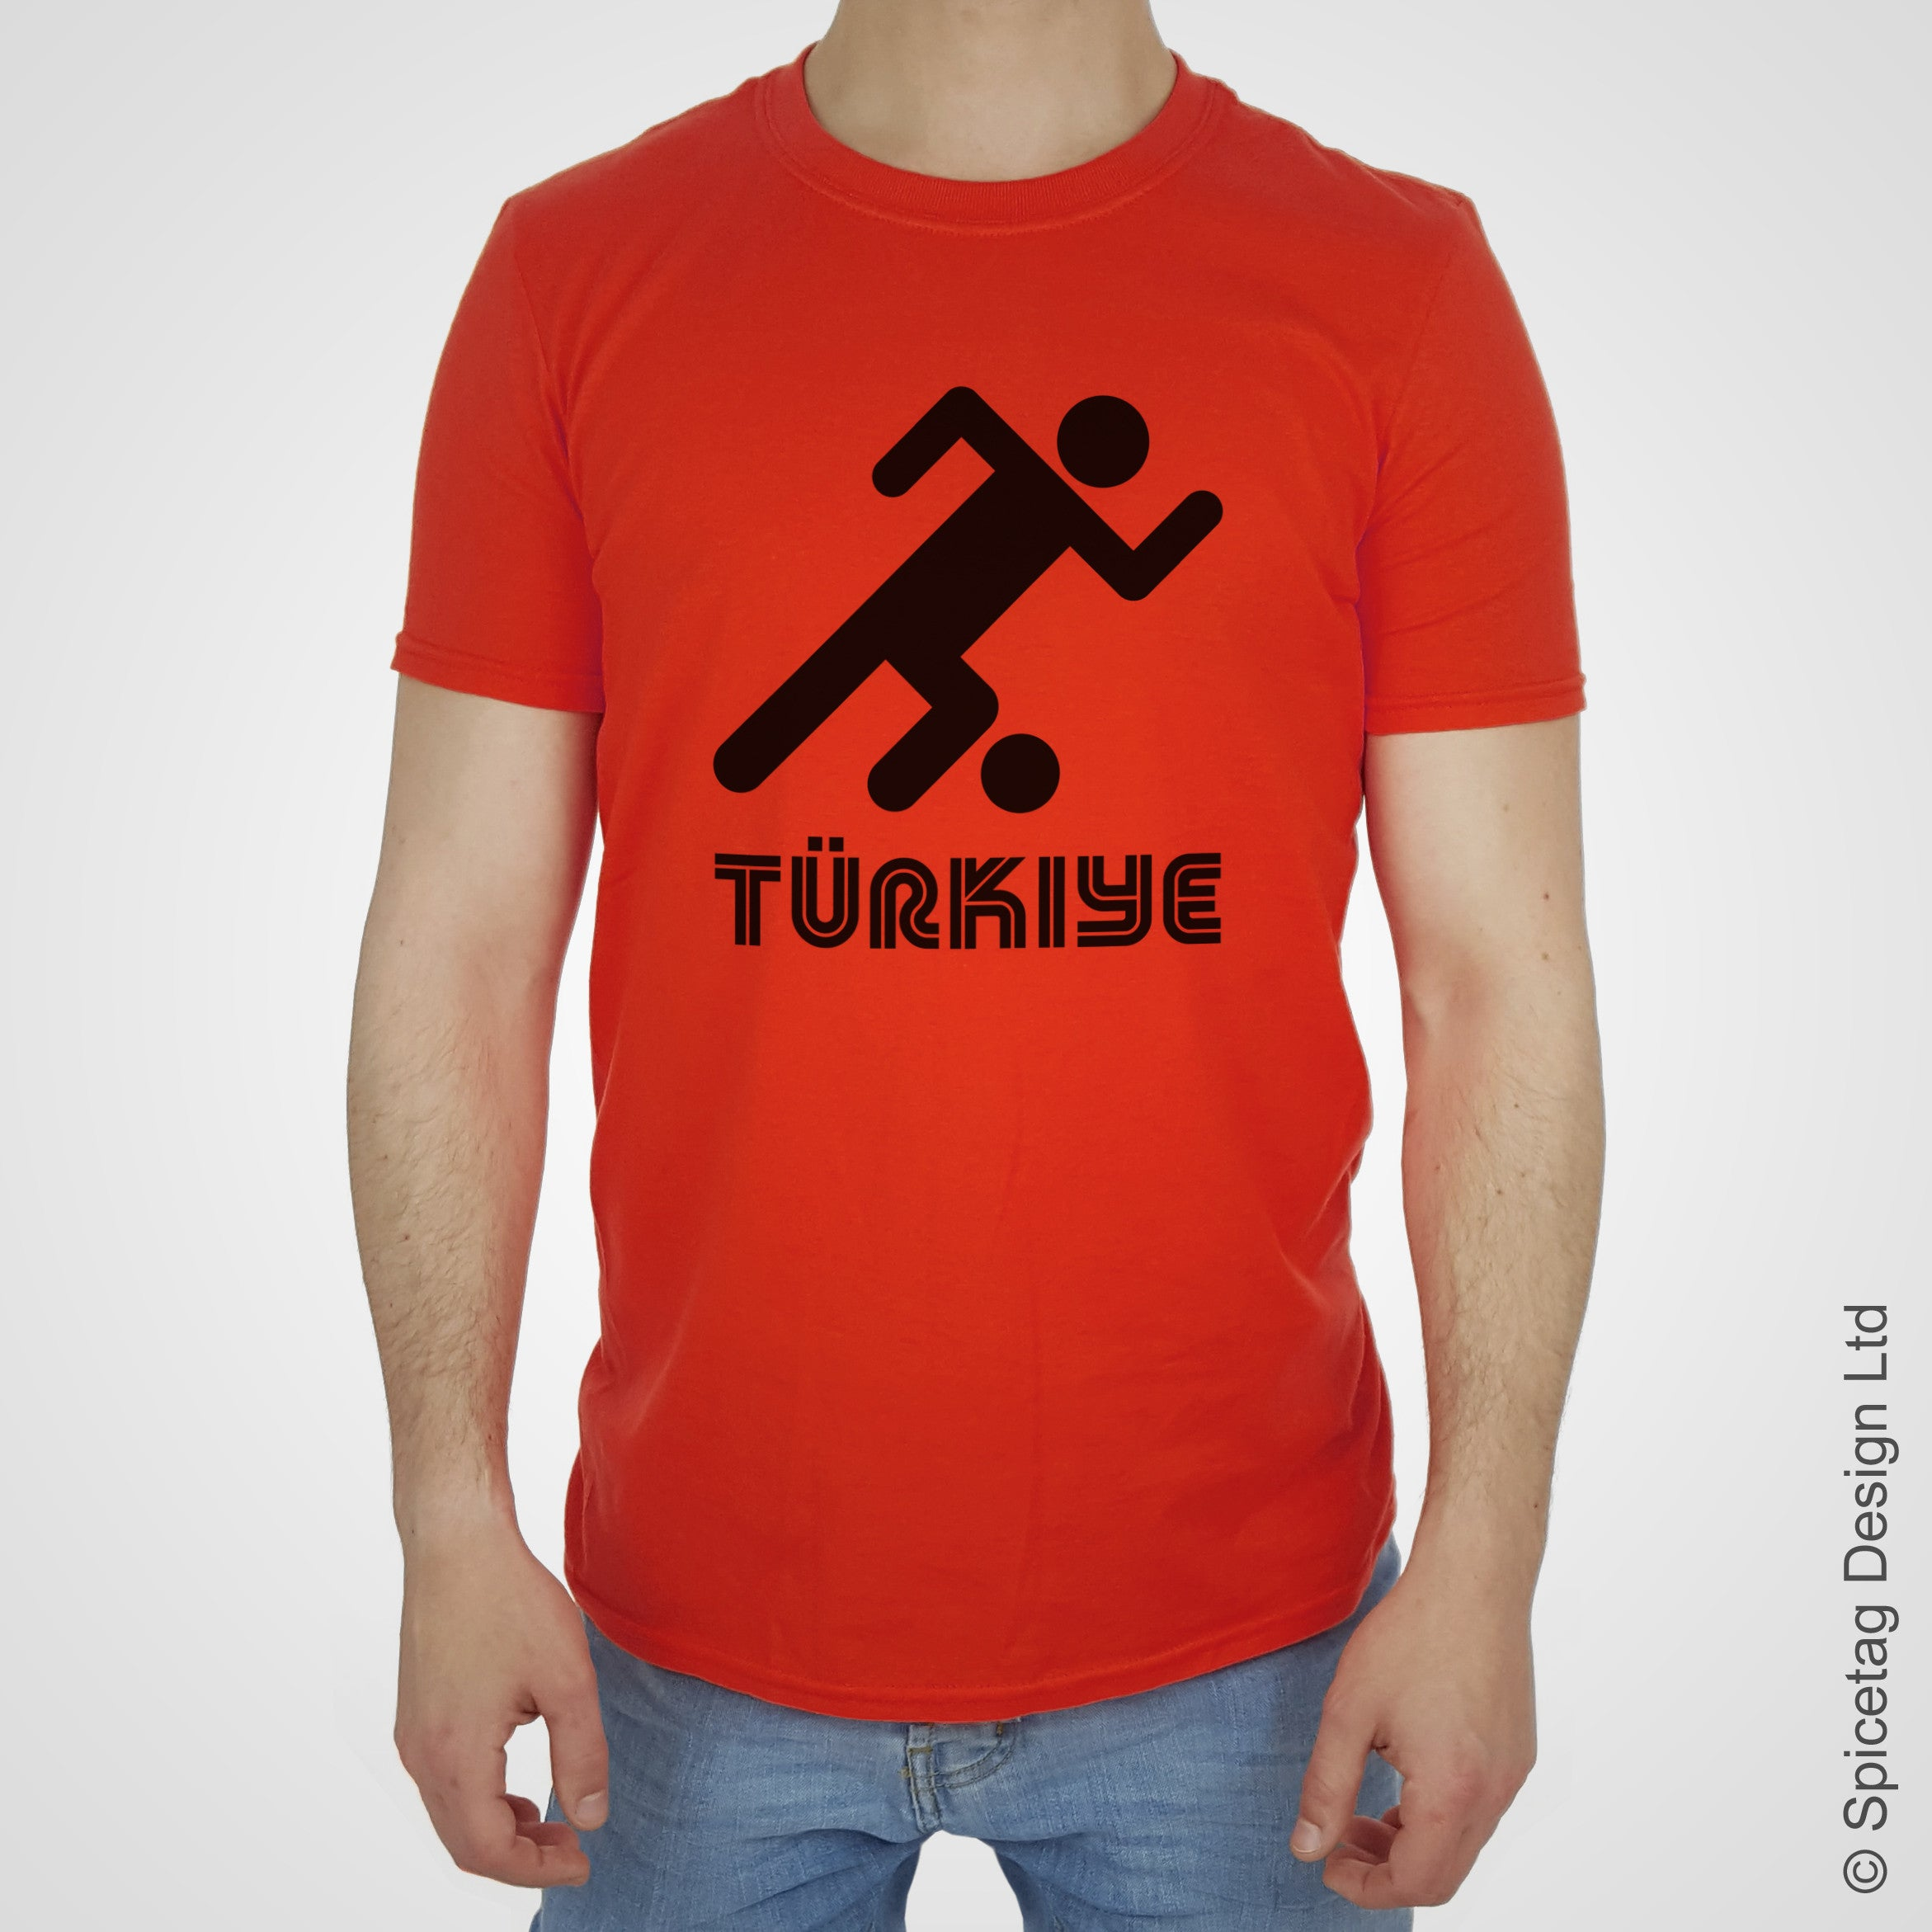 Turkey Retro Football T-shirt